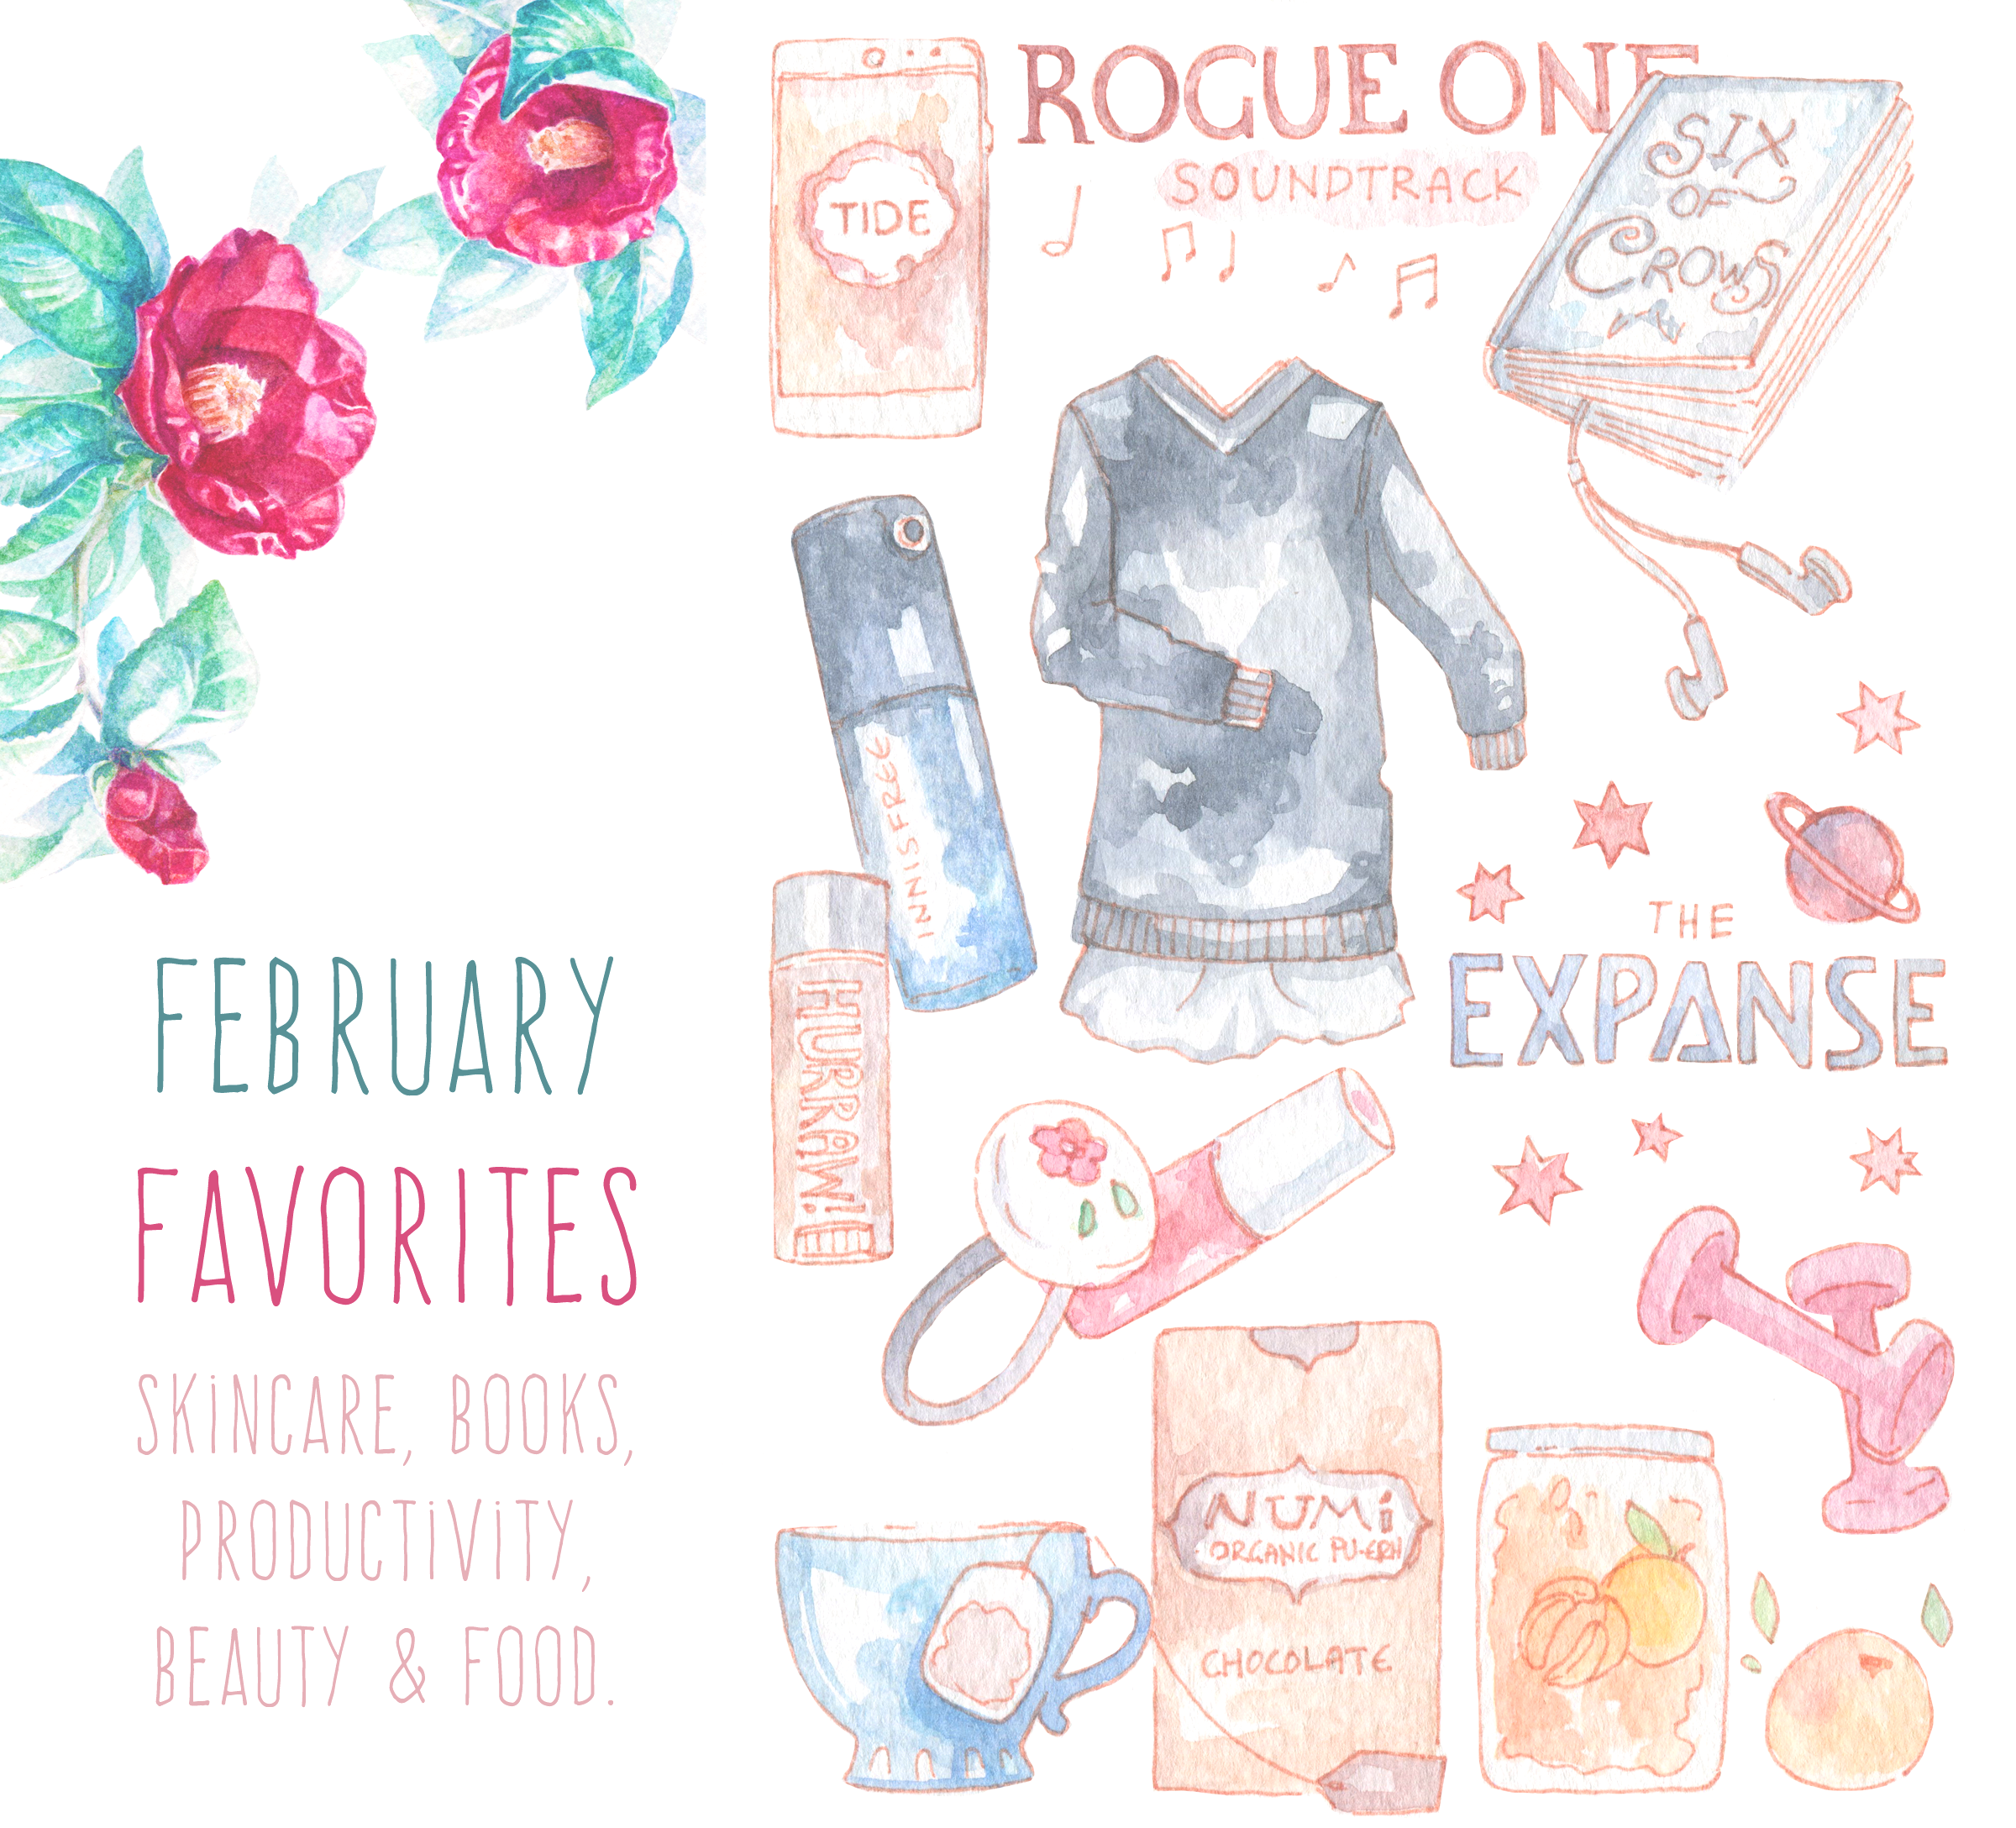 My favorites for February, illustrated in watercolor. Featuring Numi tea, Korean fruit teas and beauty products (I'm getting into anti-aging for real now that my 30s are close), a super pretty productivity app and my favorite books and show of the month (or all time, who knows?).